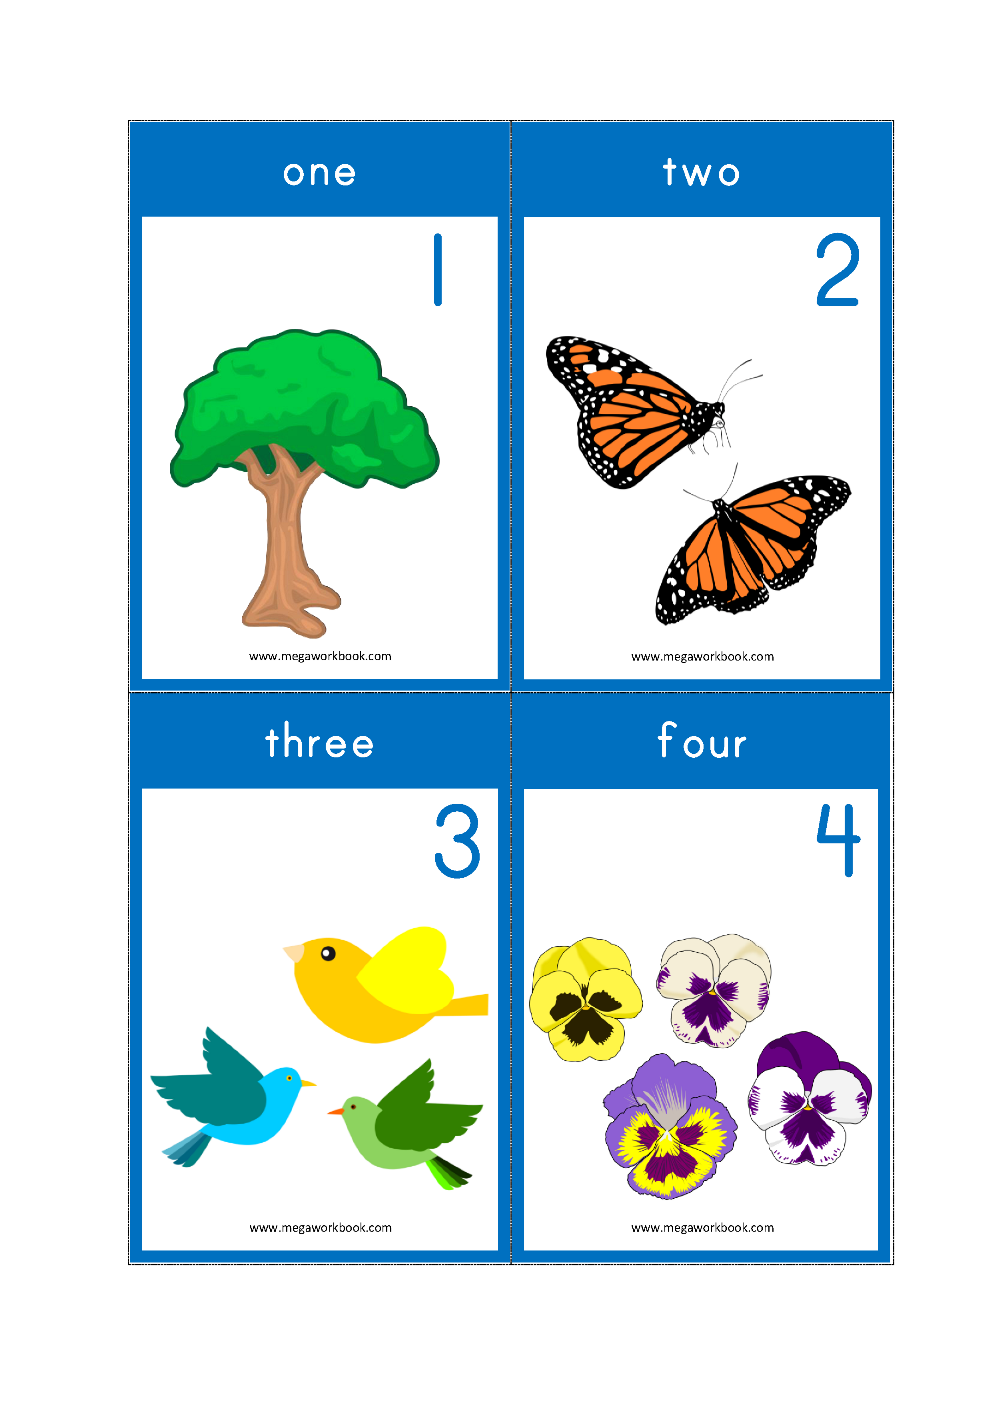 graphic regarding Printable Number Flashcards called Variety Flashcards - Quantity Flashcards Printable No cost - (1 in direction of